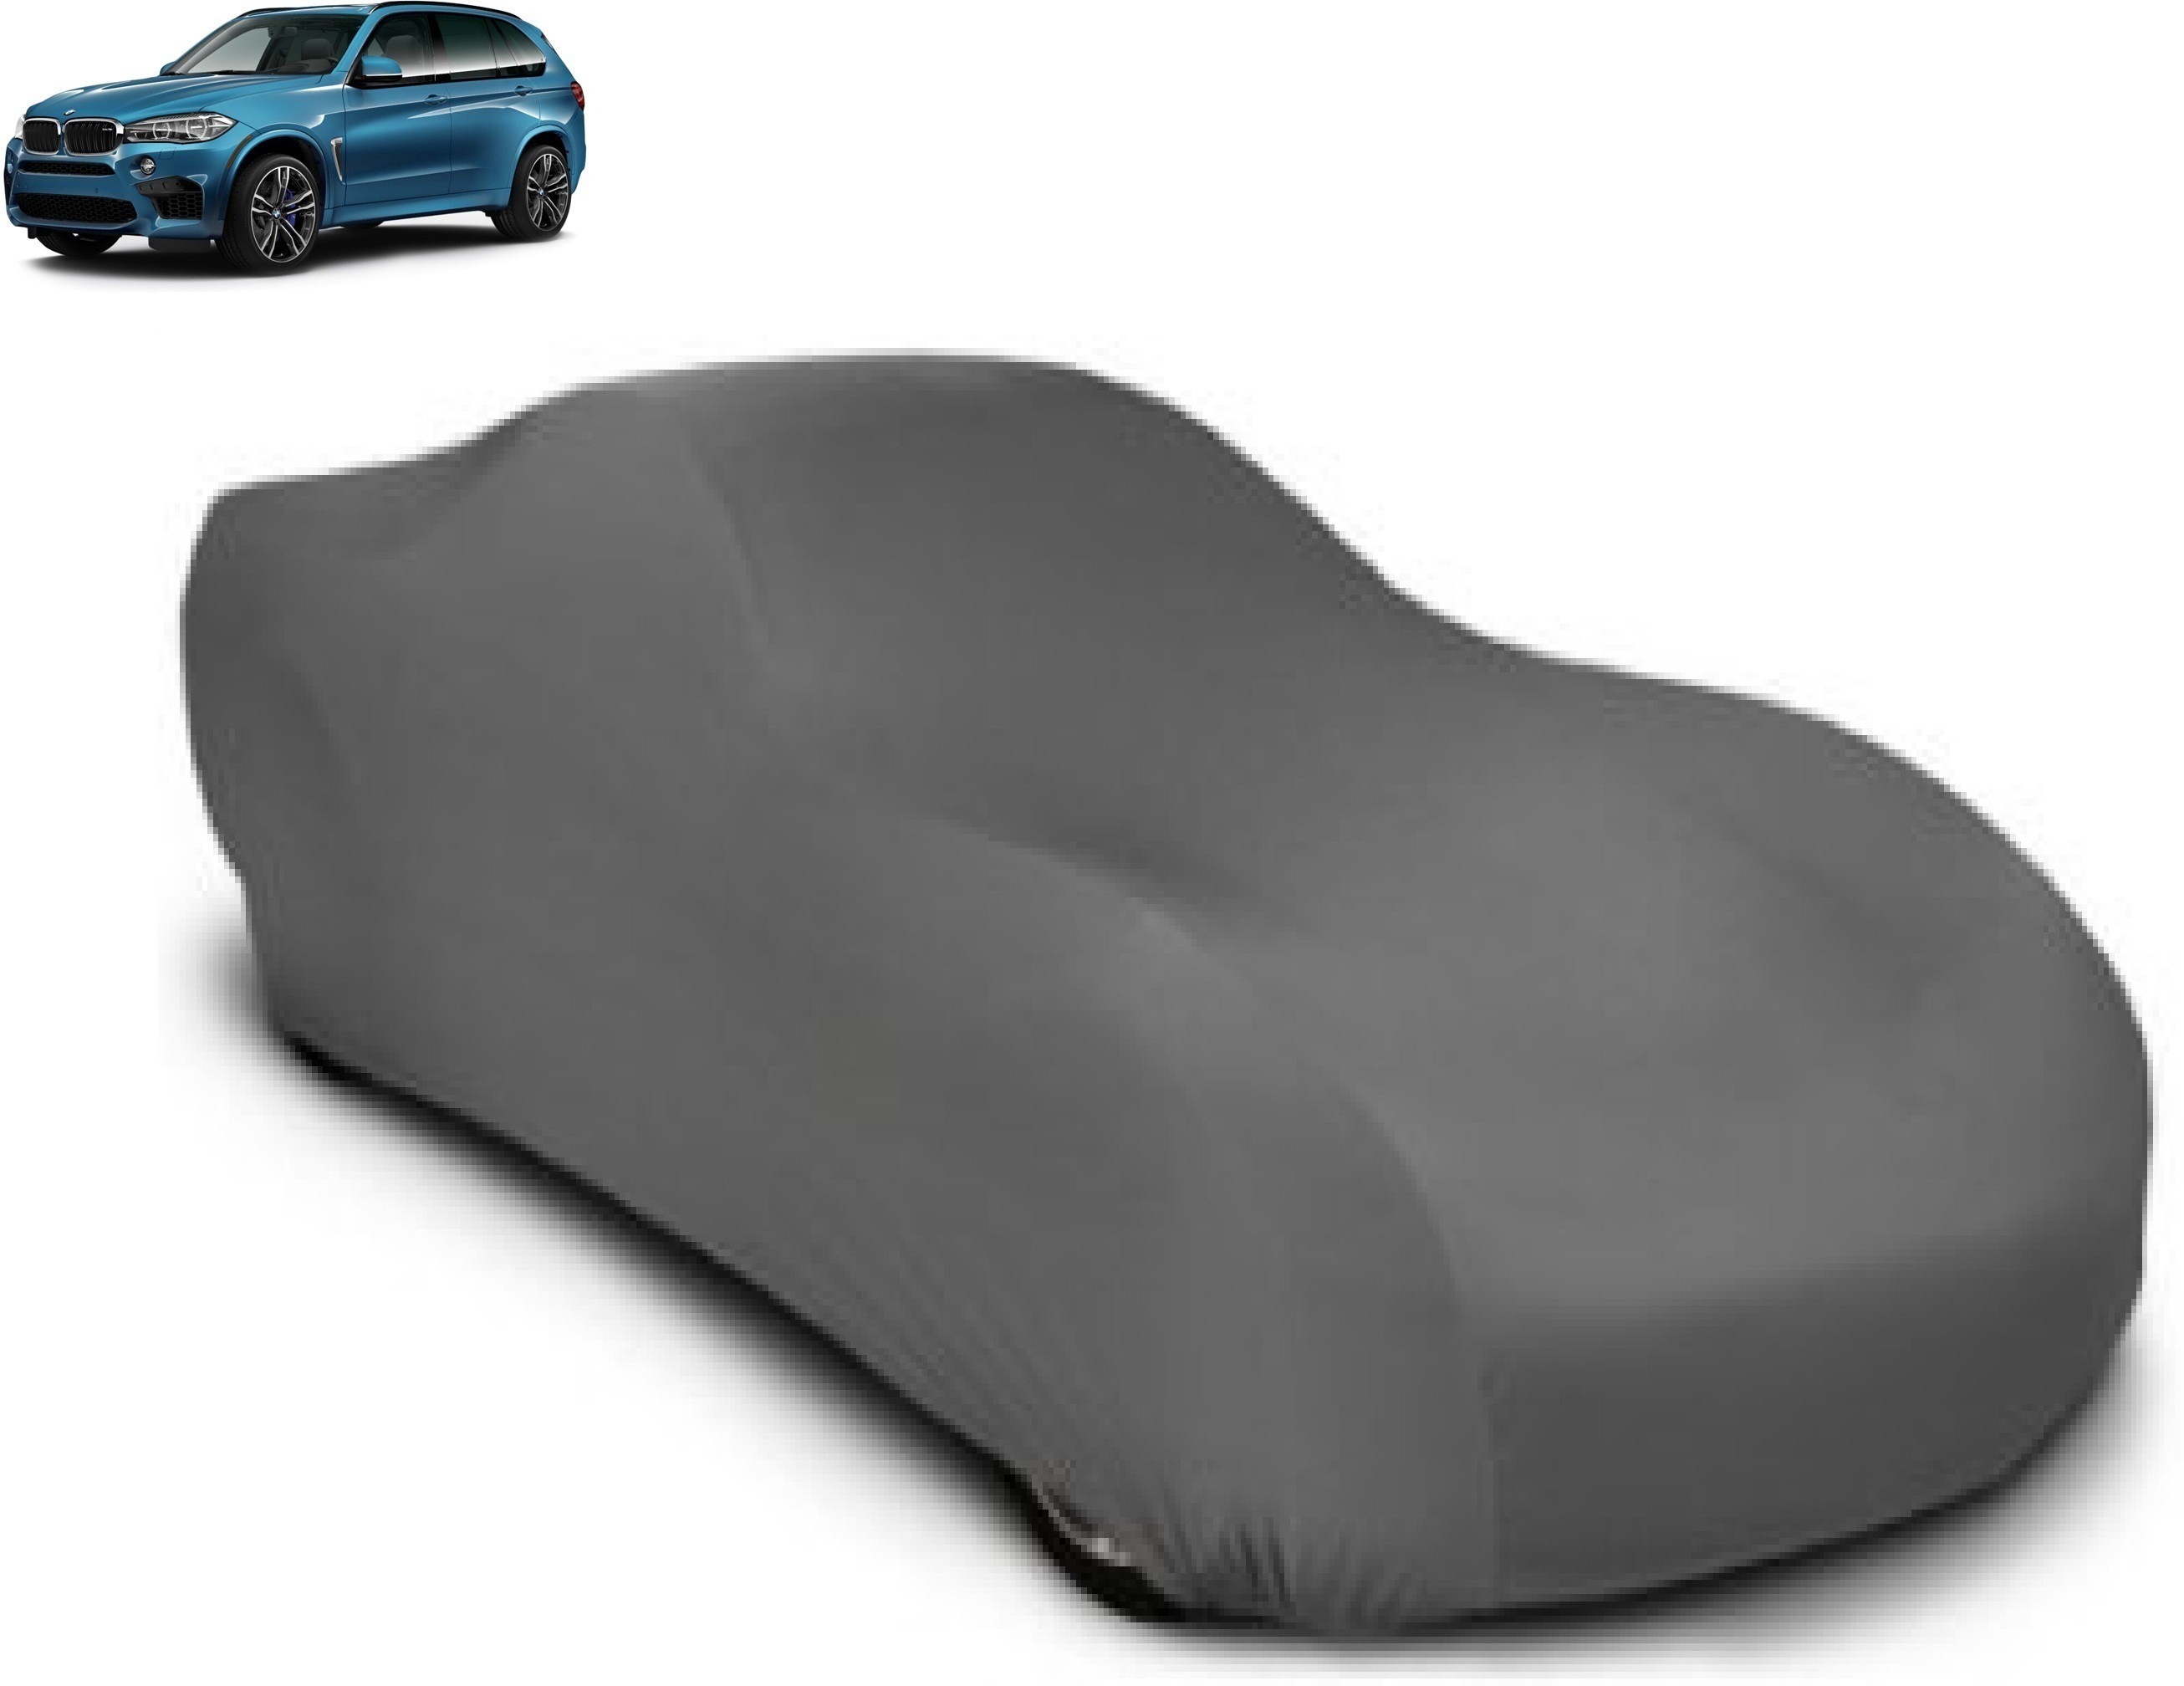 Iron Tech Car Cover For BMW X5M Image